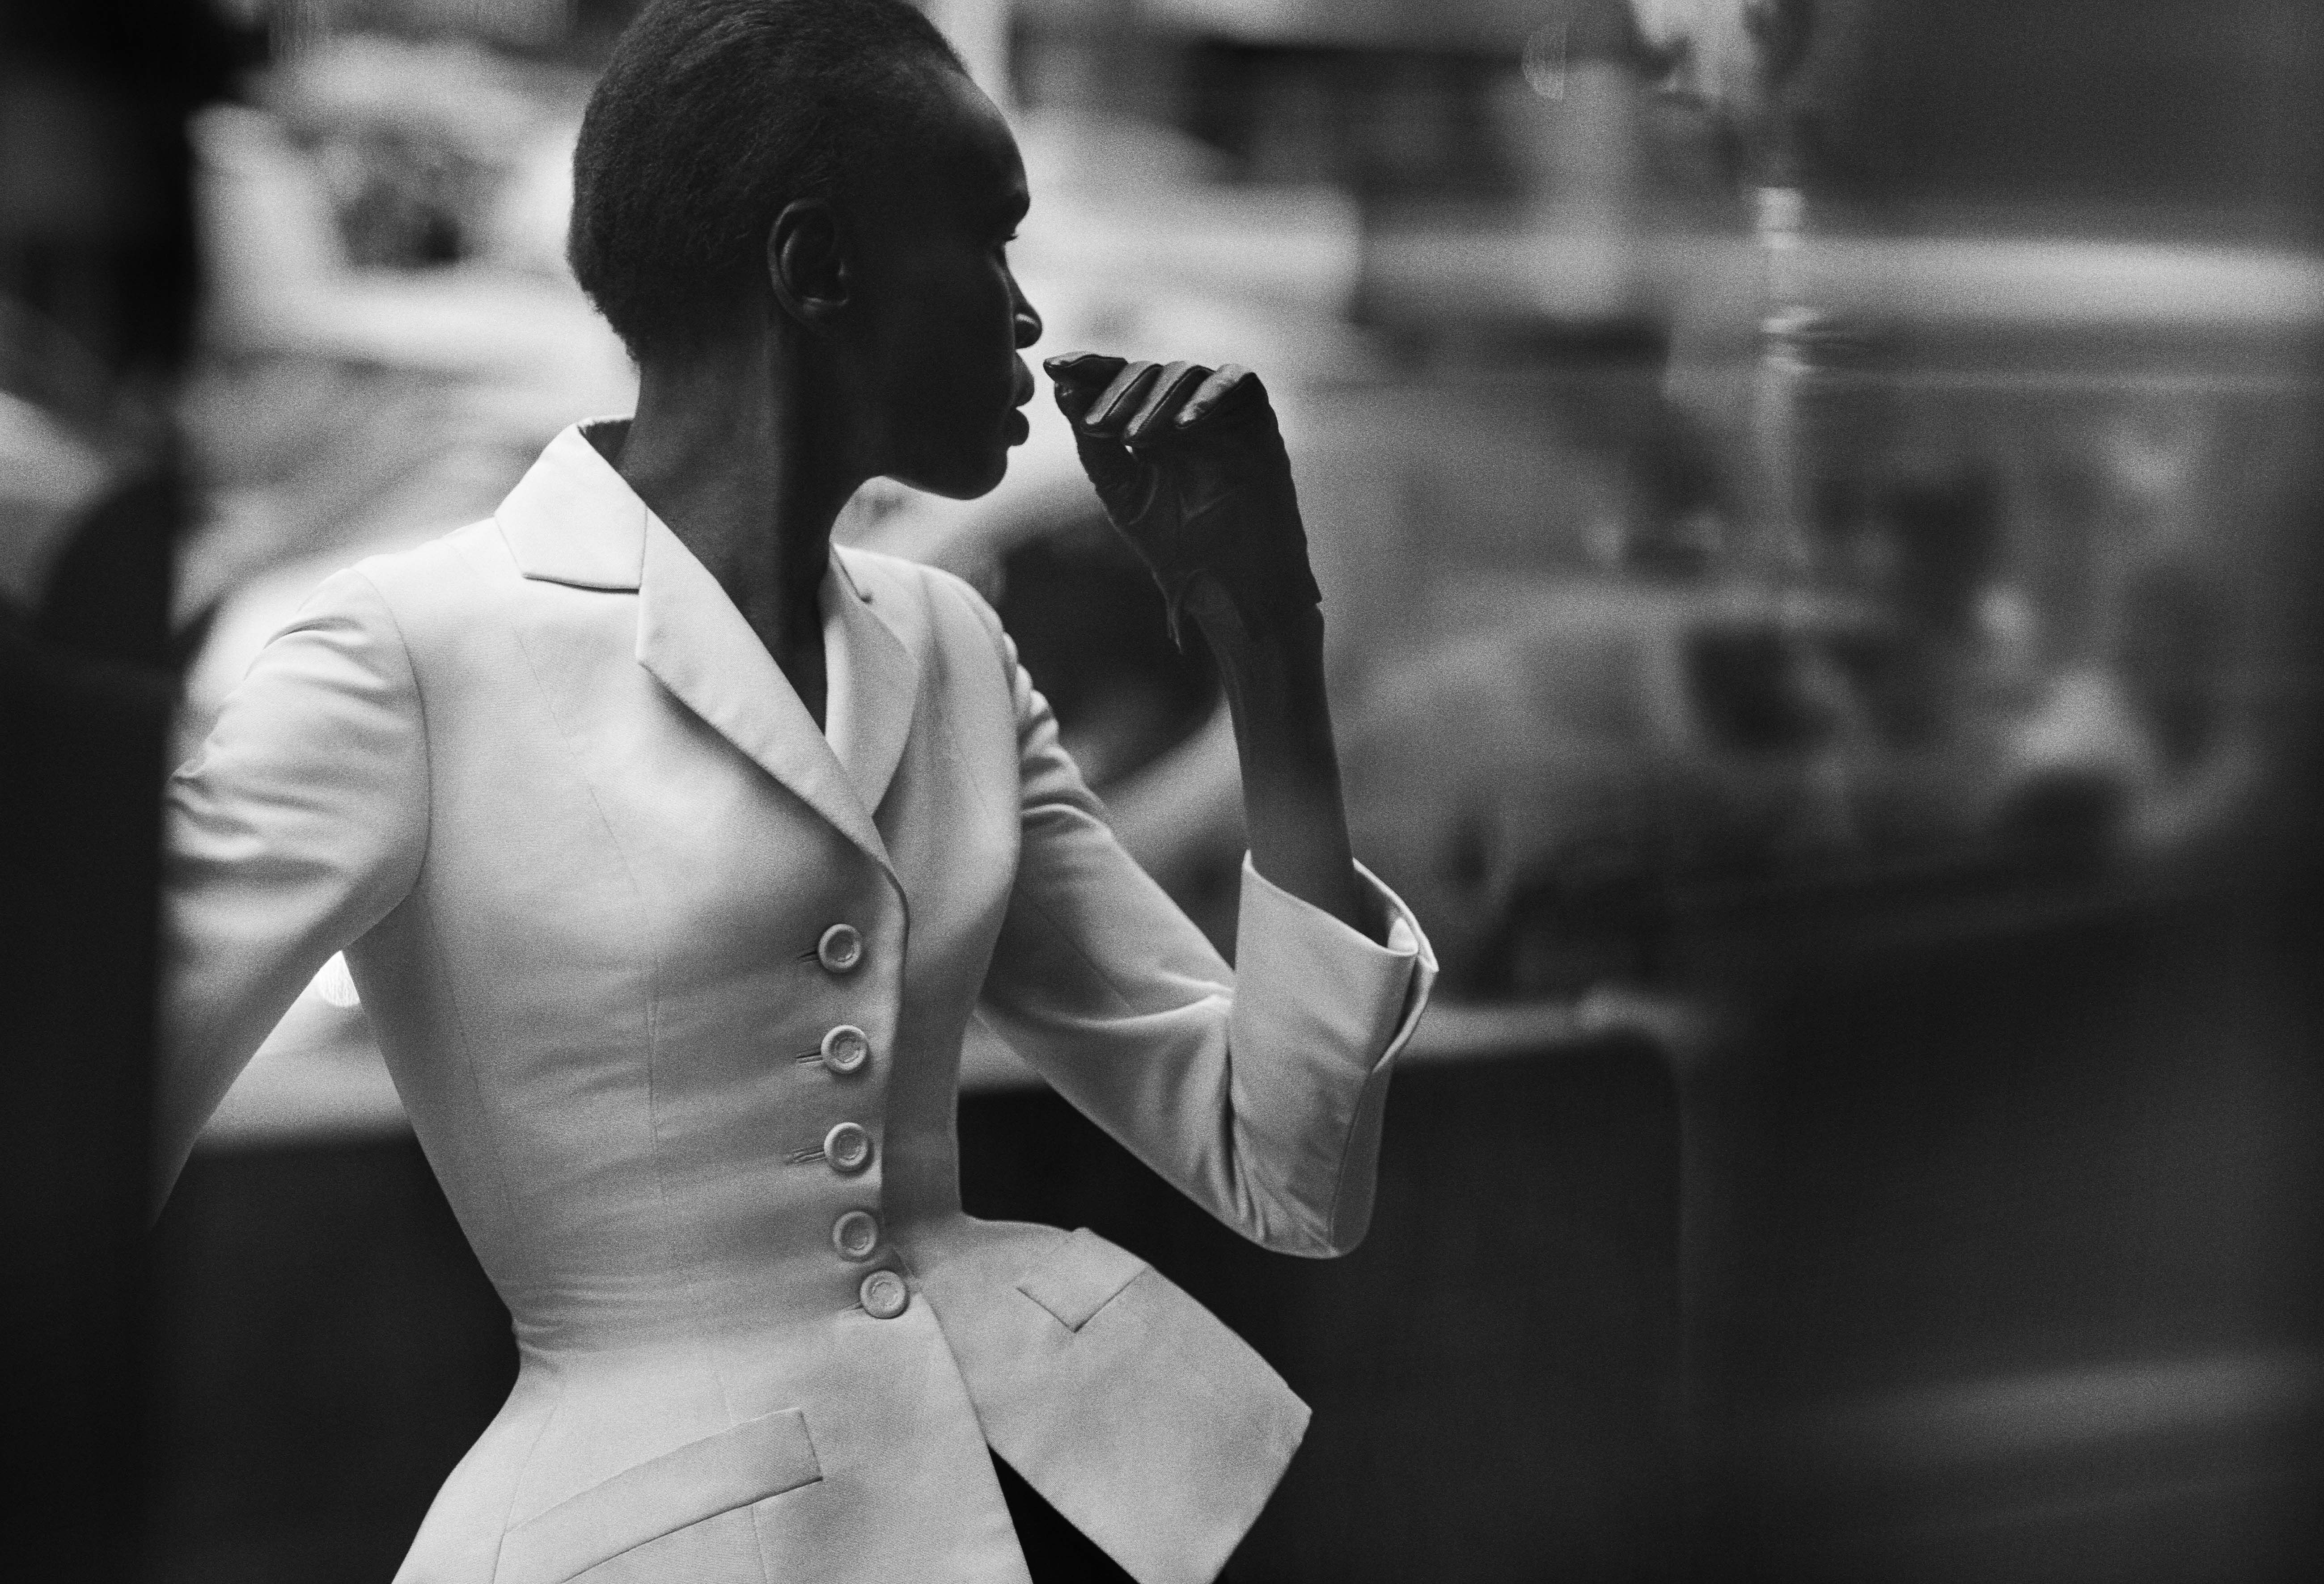 Dior by Peter Lindbergh: An exclusive look inside